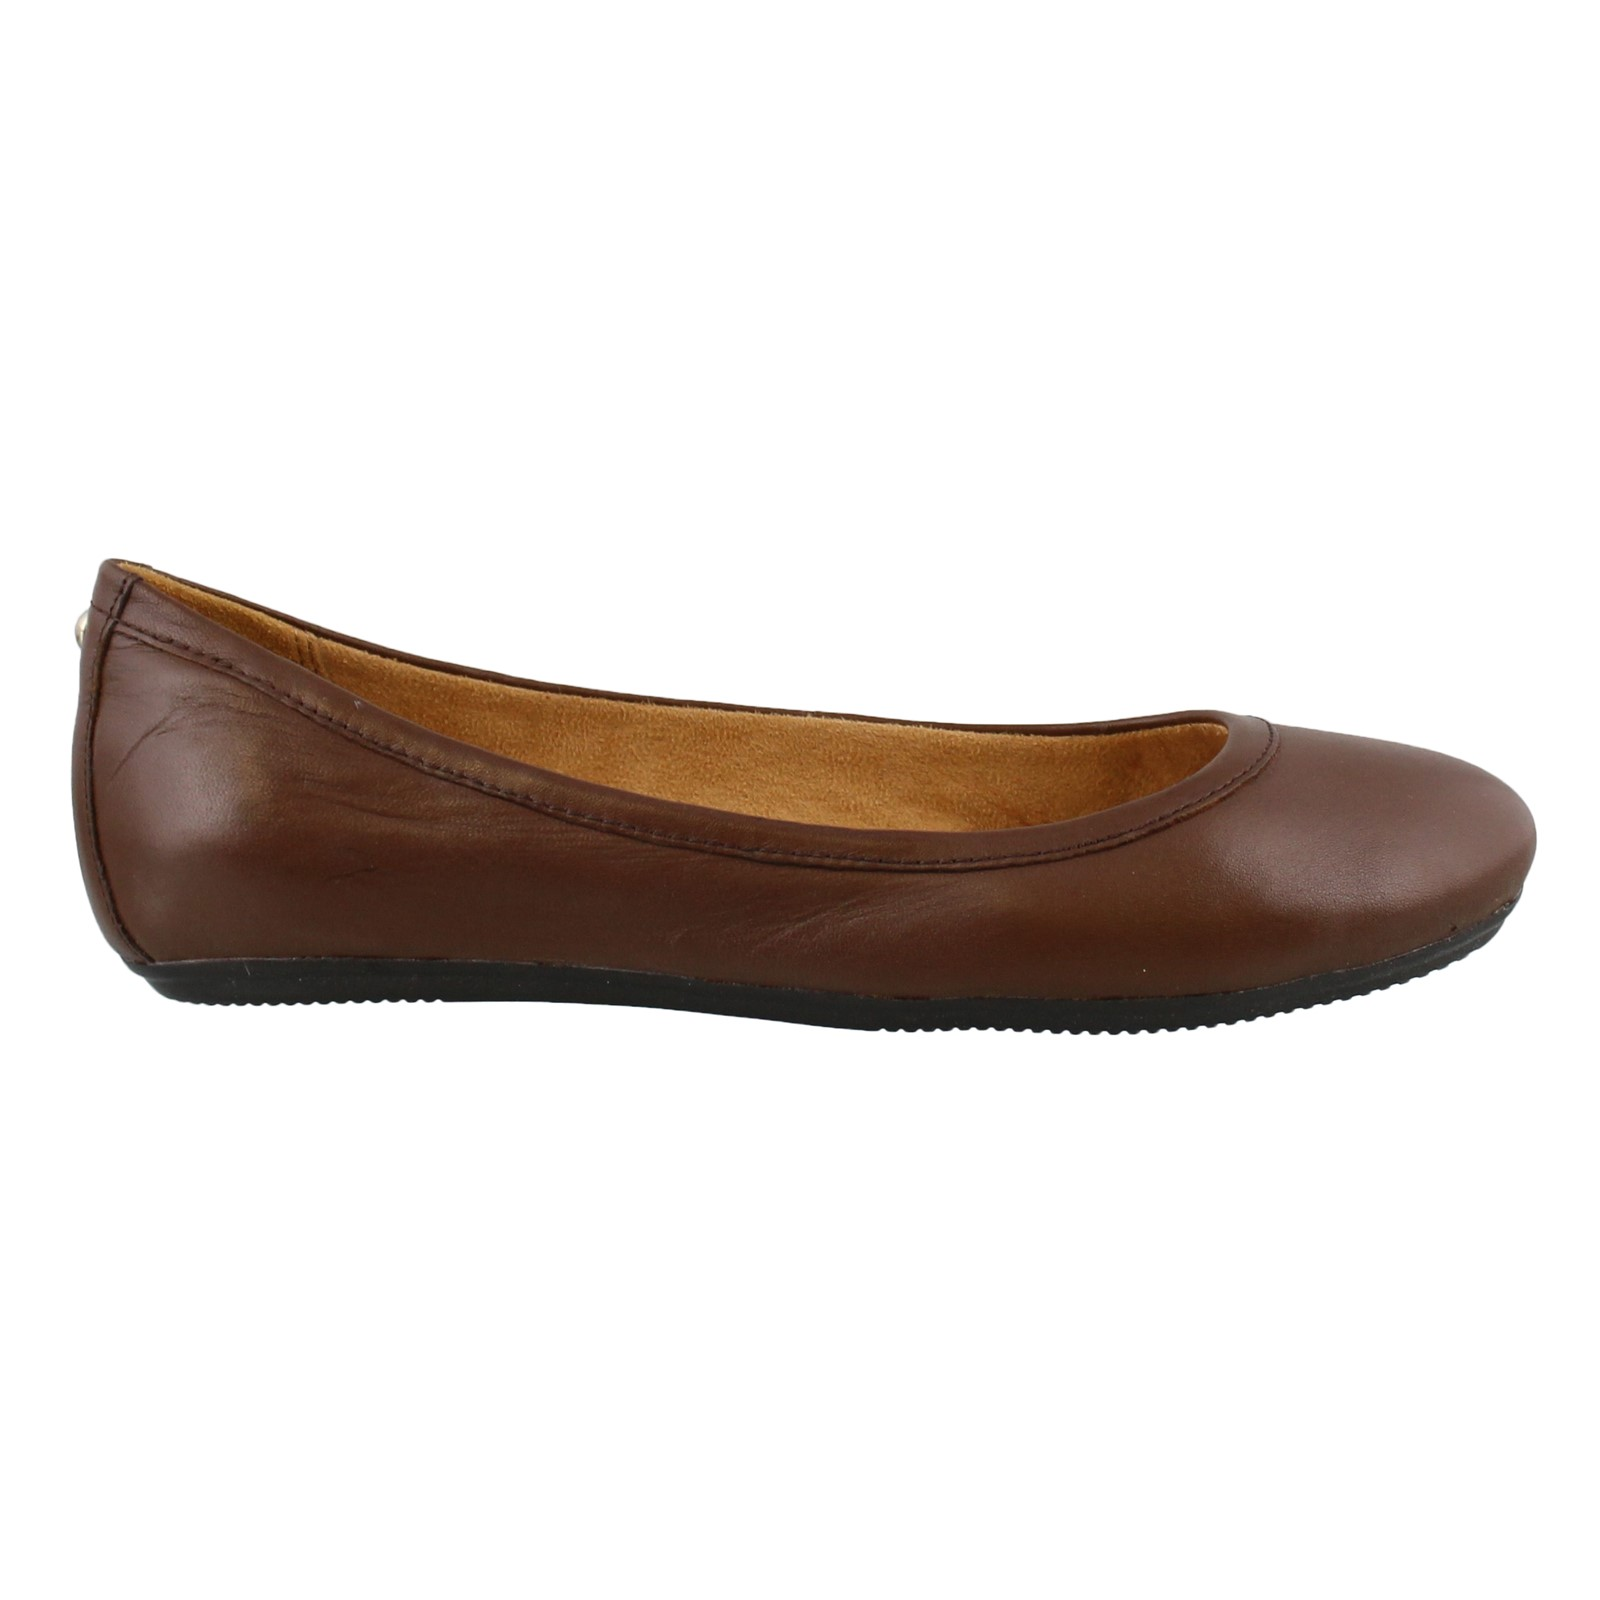 5a003f909e8 Women s Naturalizer